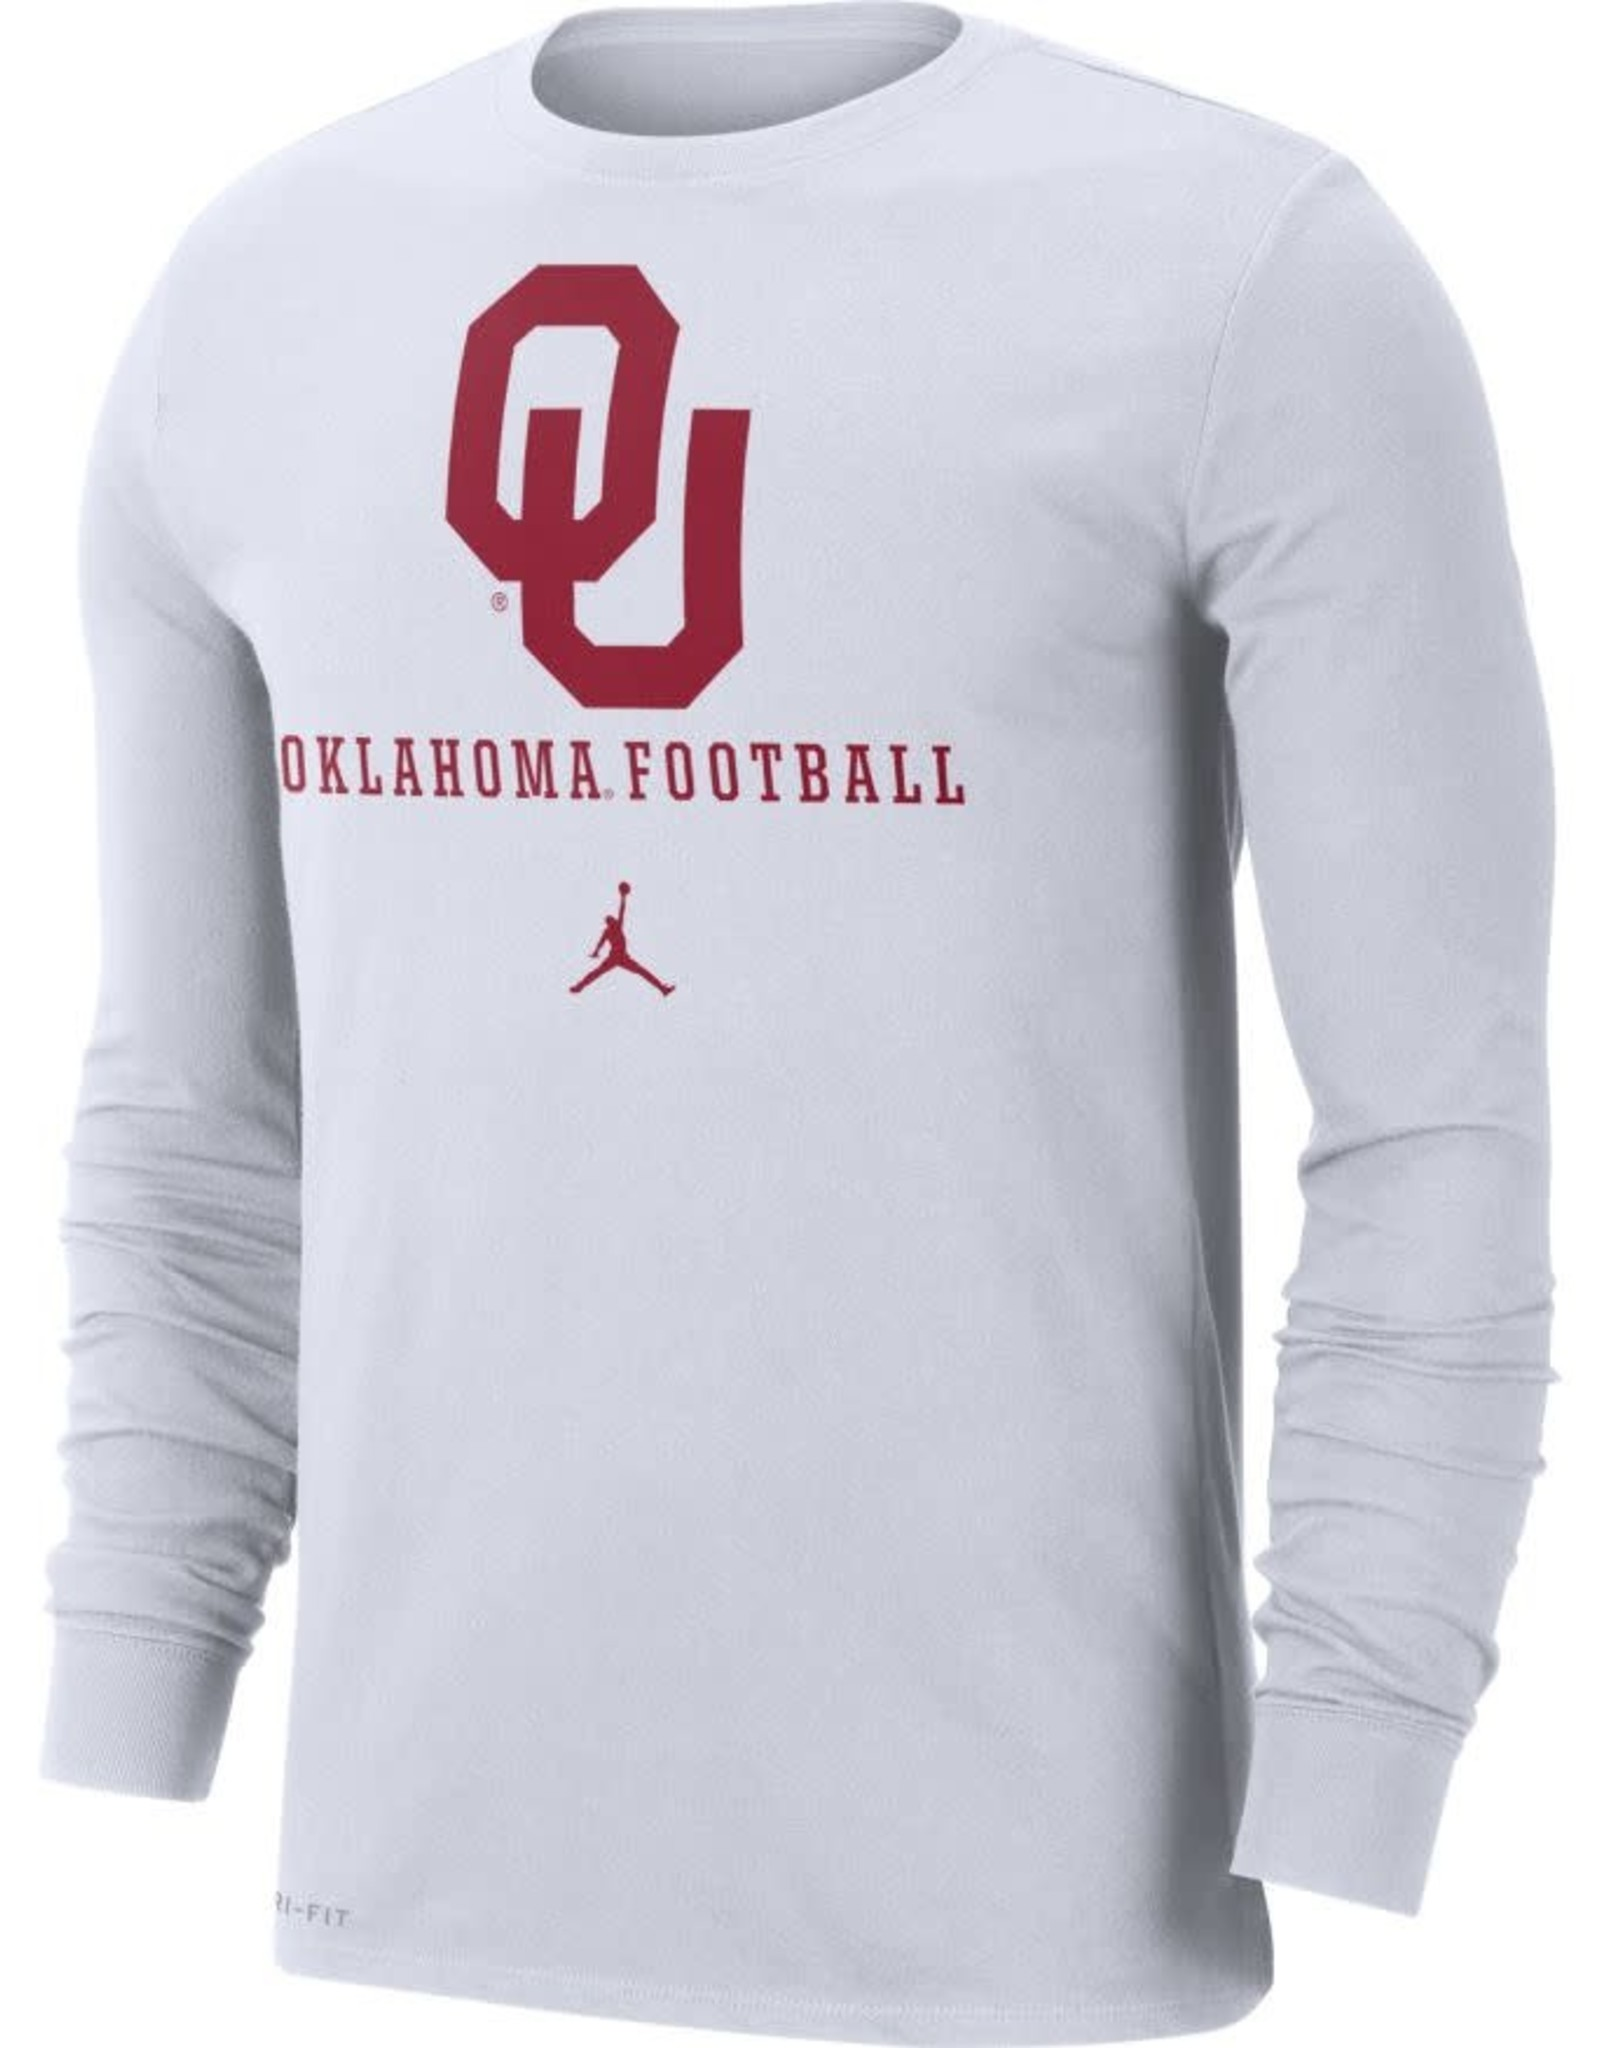 Jordan Men's Jordan OU Football DriFit Cotton Icon Wordmark L/S Tee